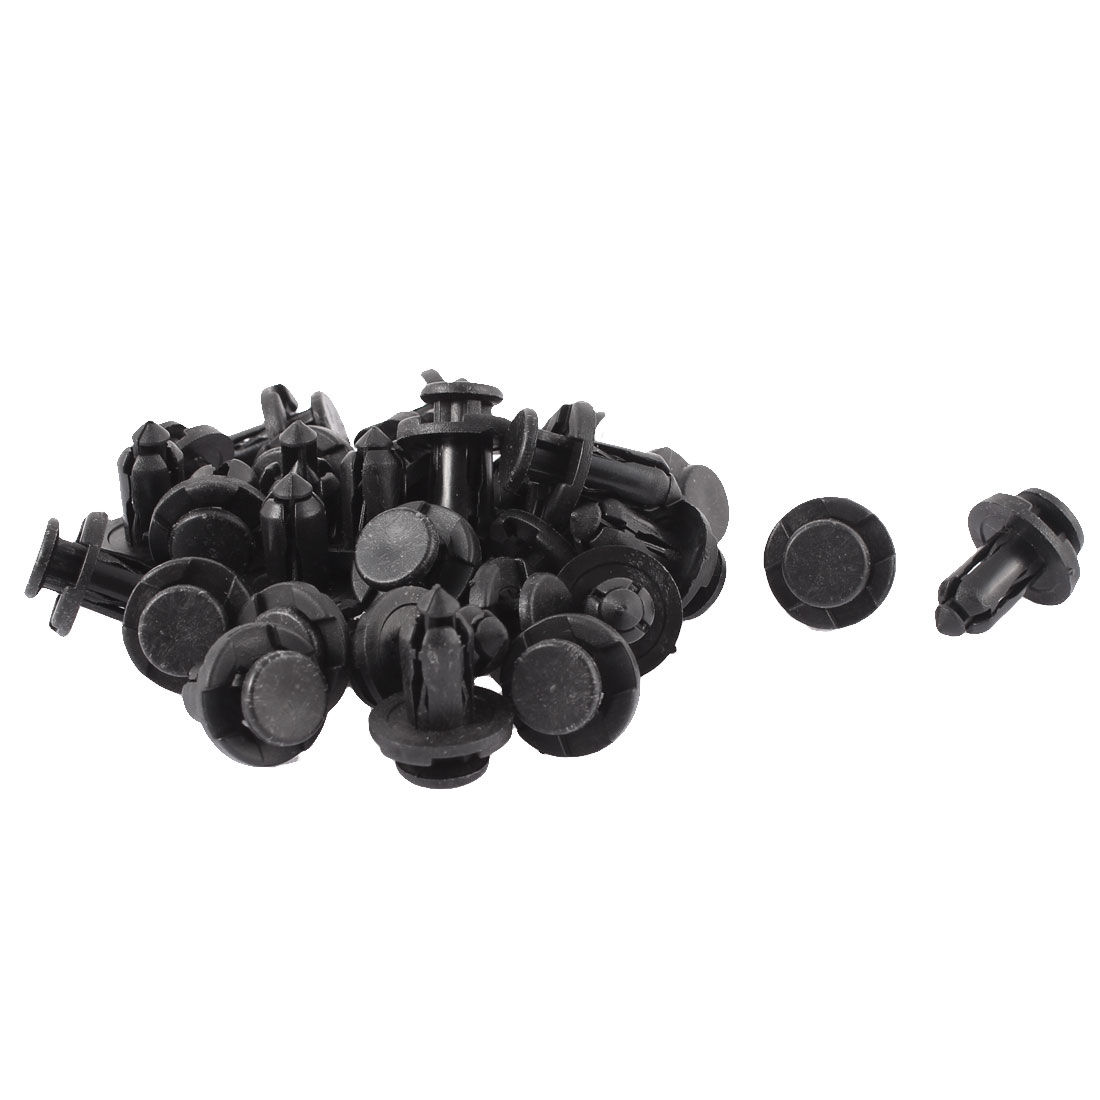 10mm x 20mm x 19mm Plastic Car Bumper Splash Guard Clips Rivets Retainer 30pcs